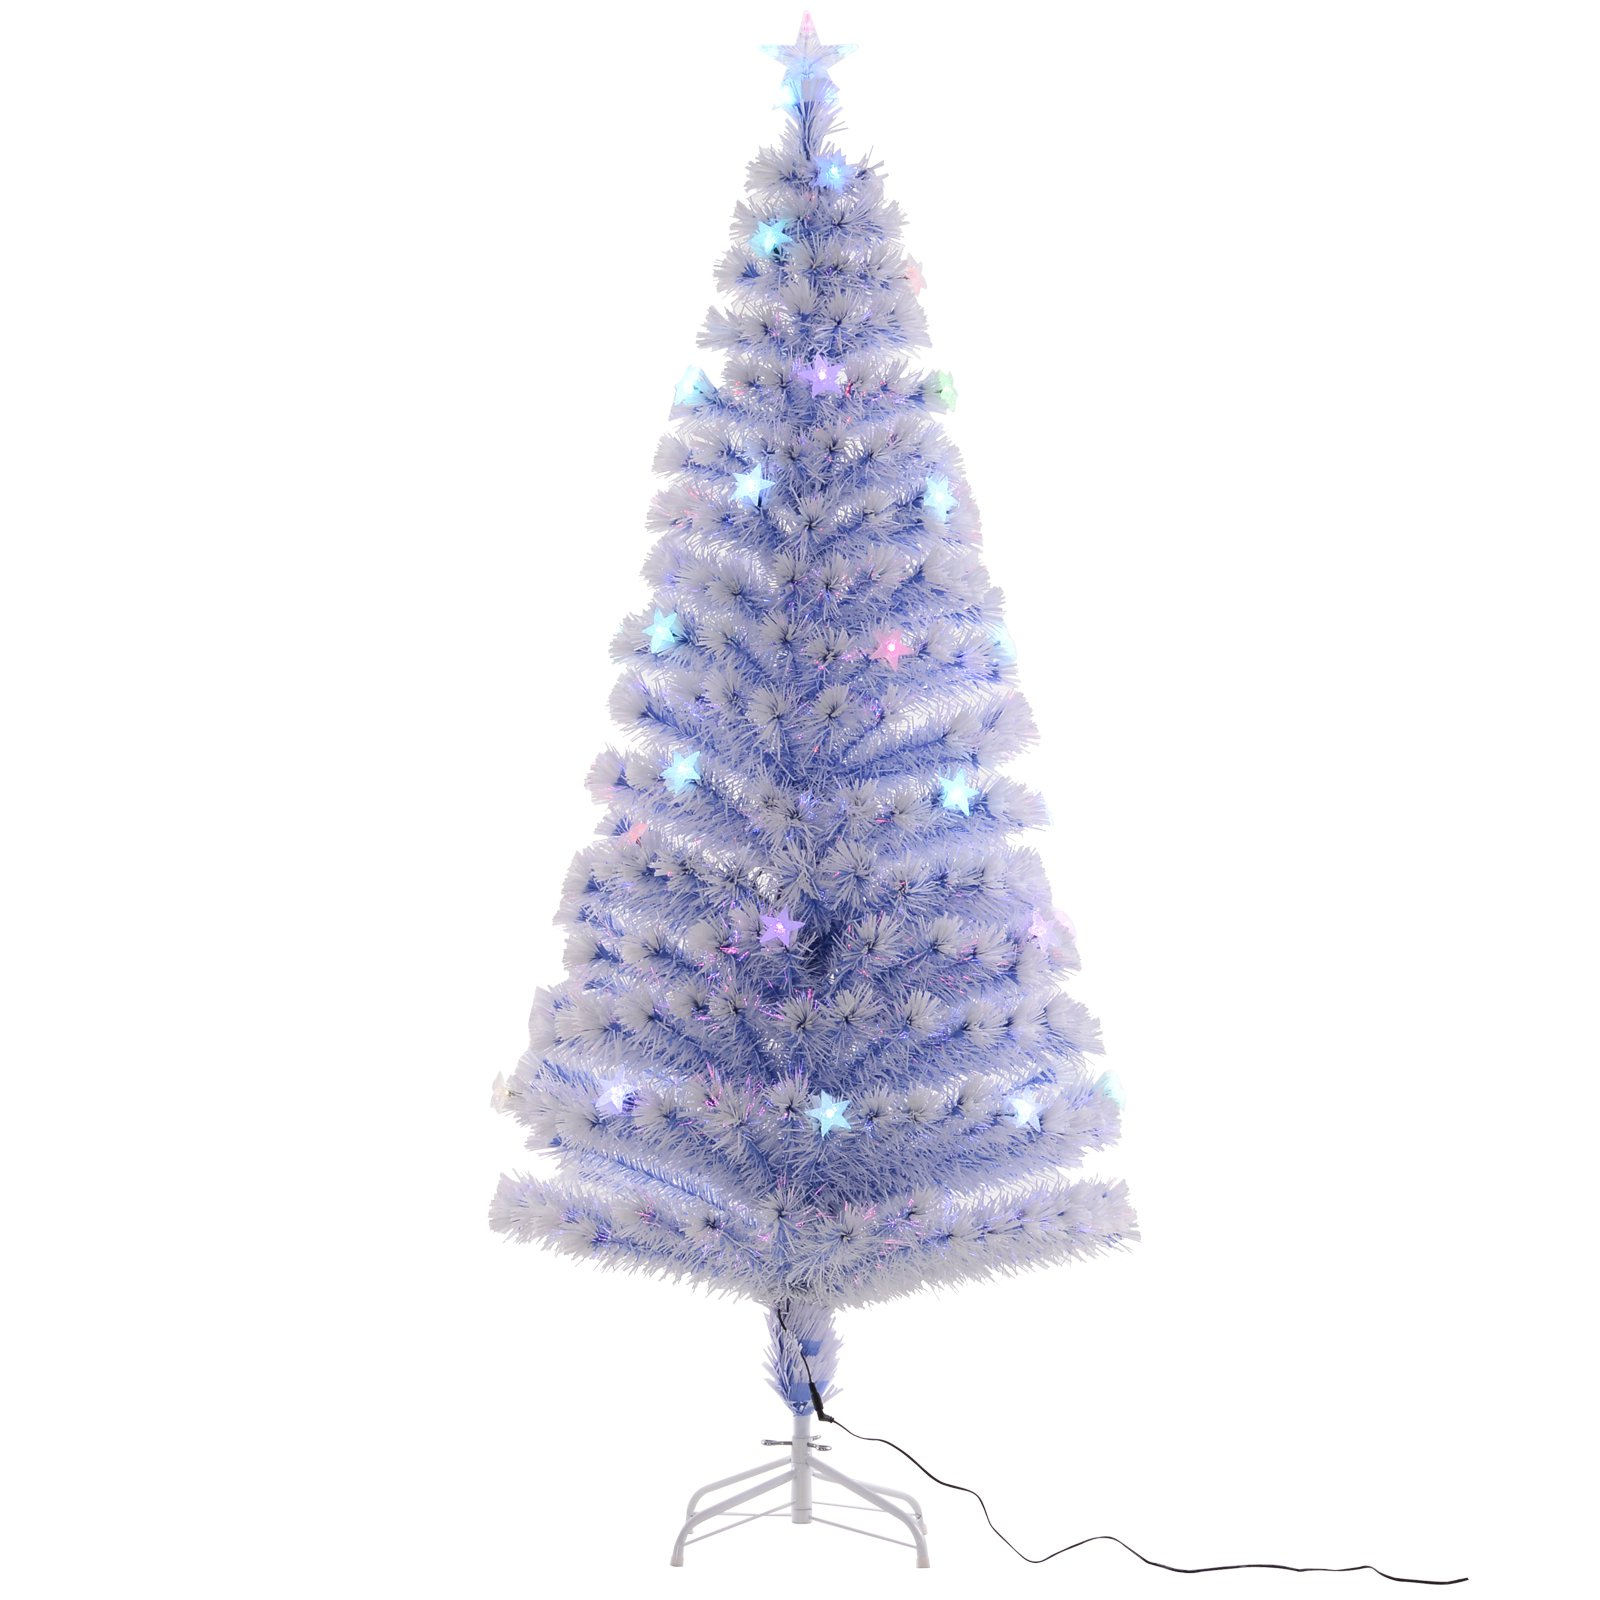 6 Prelit Fiber Optic Artificial Christmas Tree With 26 Led Lights White Blue Walmart Com Walmart Com